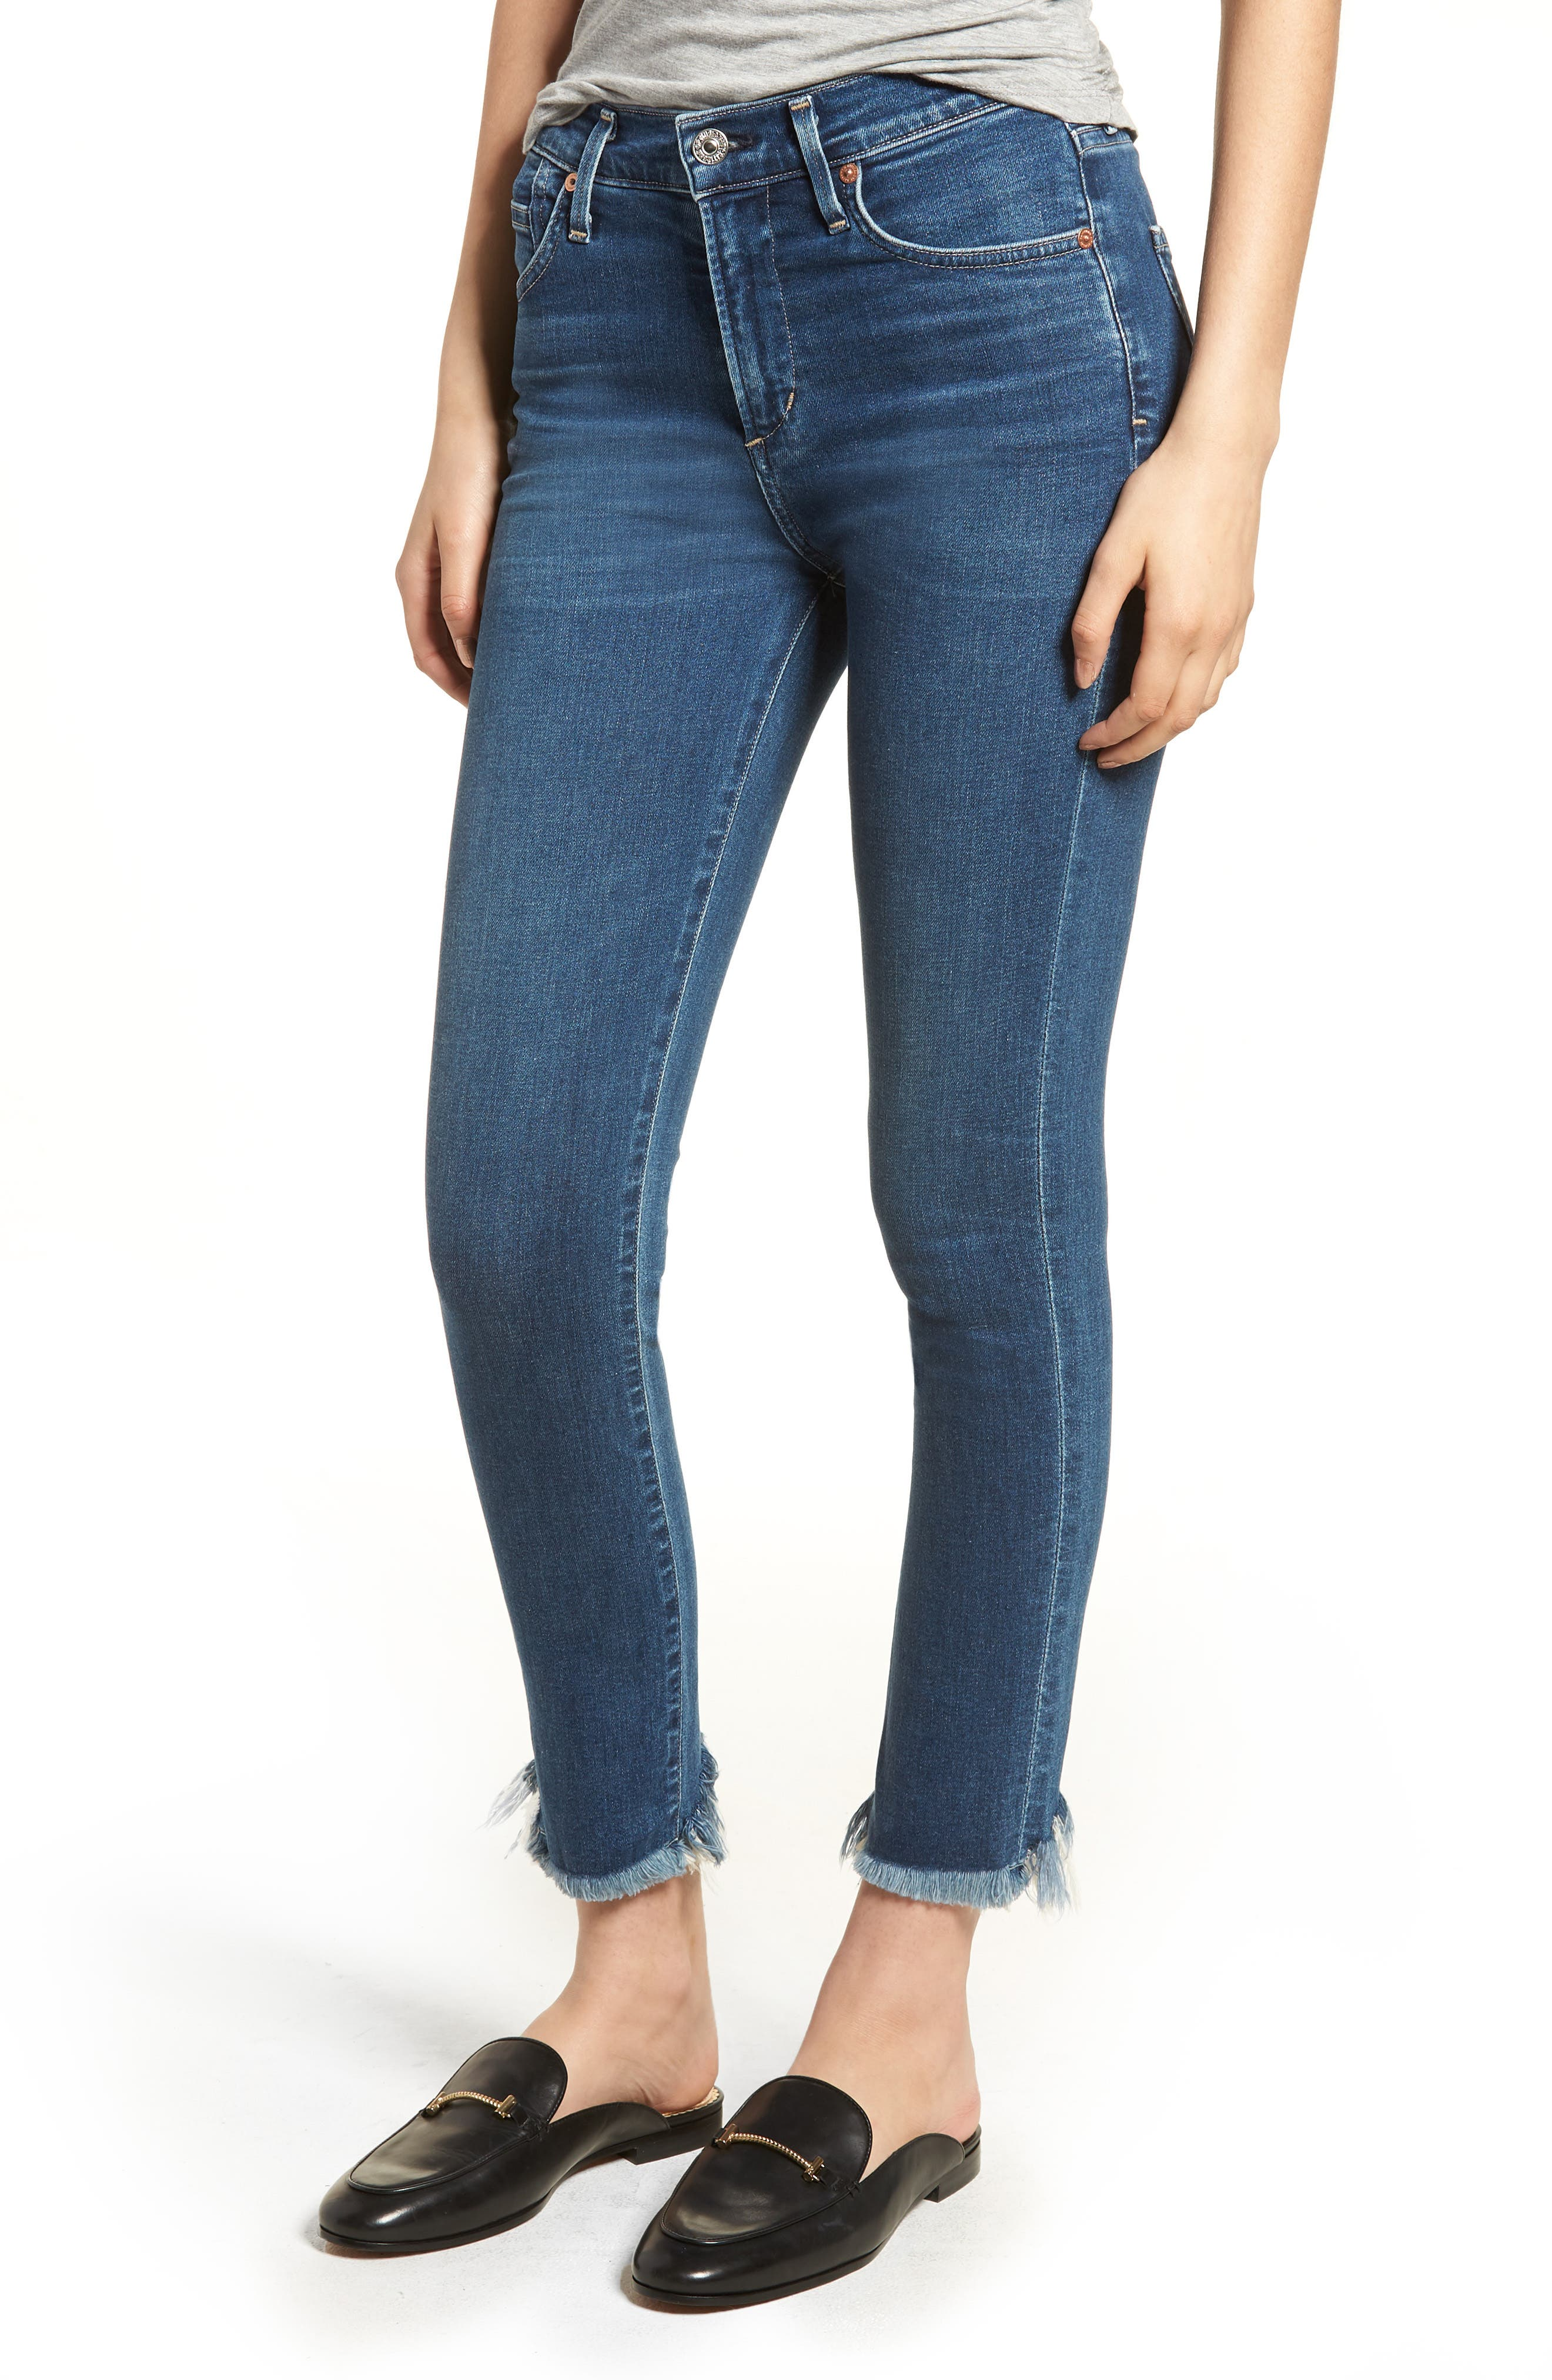 High Waisted Jeans. invalid category id. High Waisted Jeans. Showing 40 of results that match your query. Search Product Result. Product - Diamante Women's Jeans · Missy Size · High Waist · Push Up · Style M Product Image. Price $ Product Title. With ShippingPass from Walmart, you can enjoy Every Day Low Prices with the.